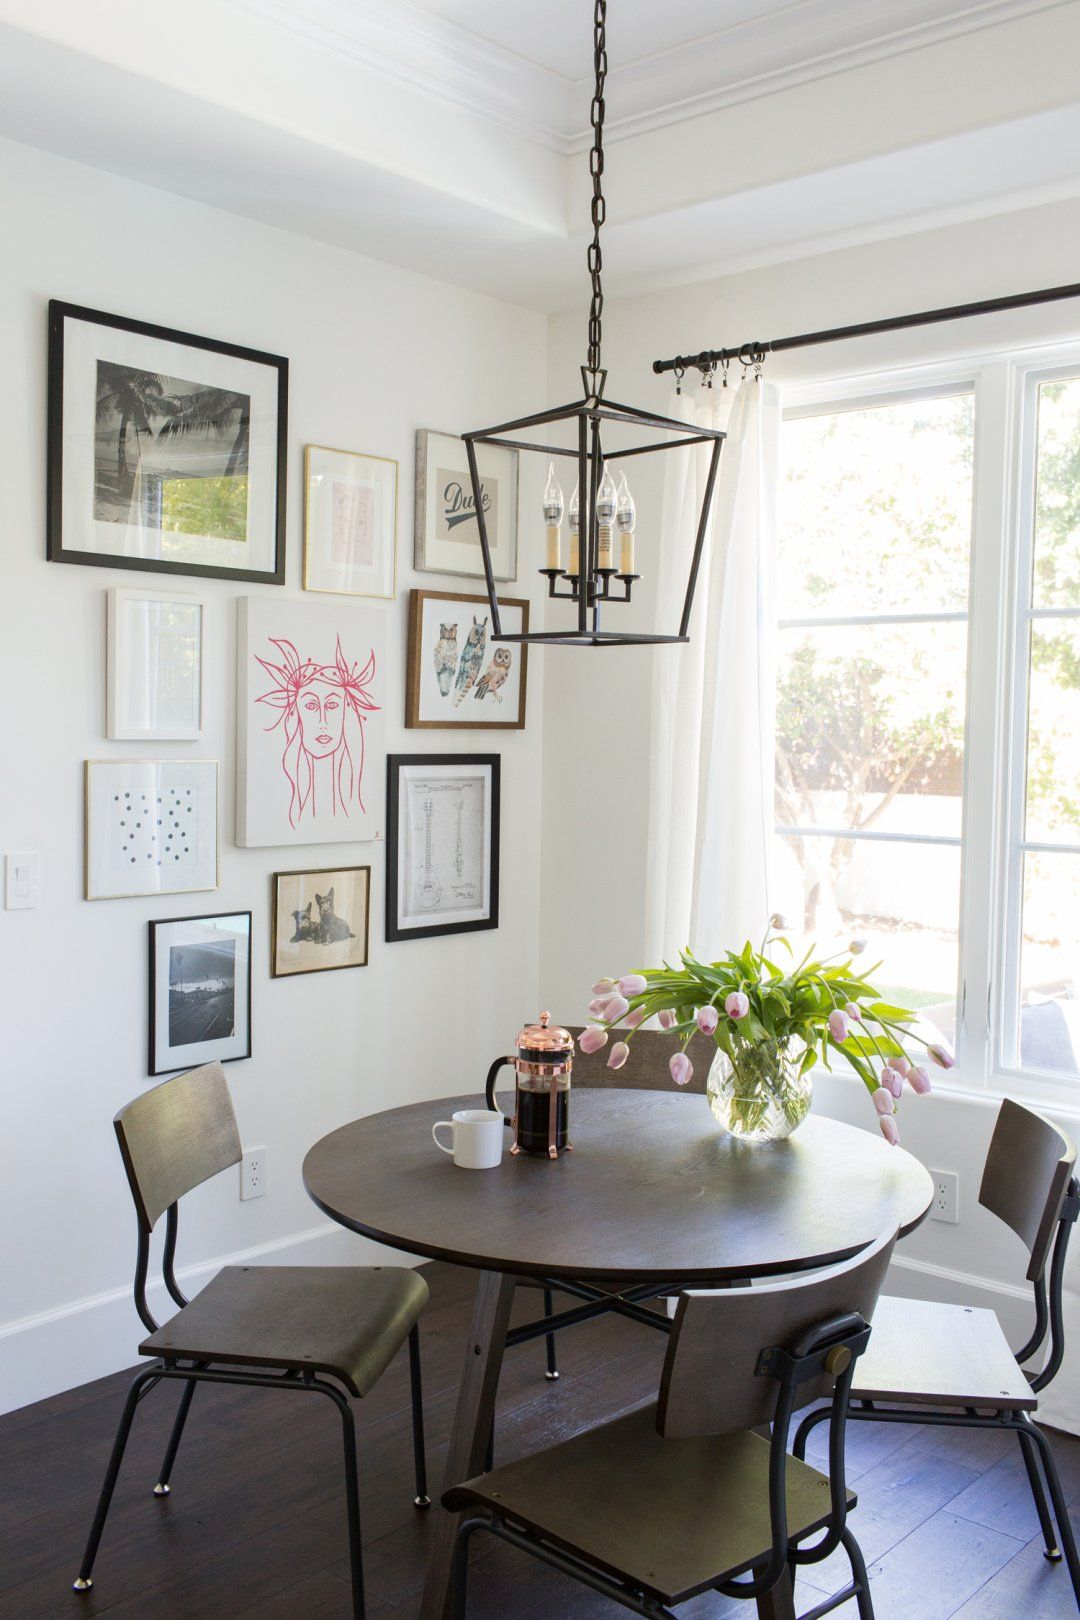 Brittany Snow Home Makeover | Small round kitchen table, Round ...